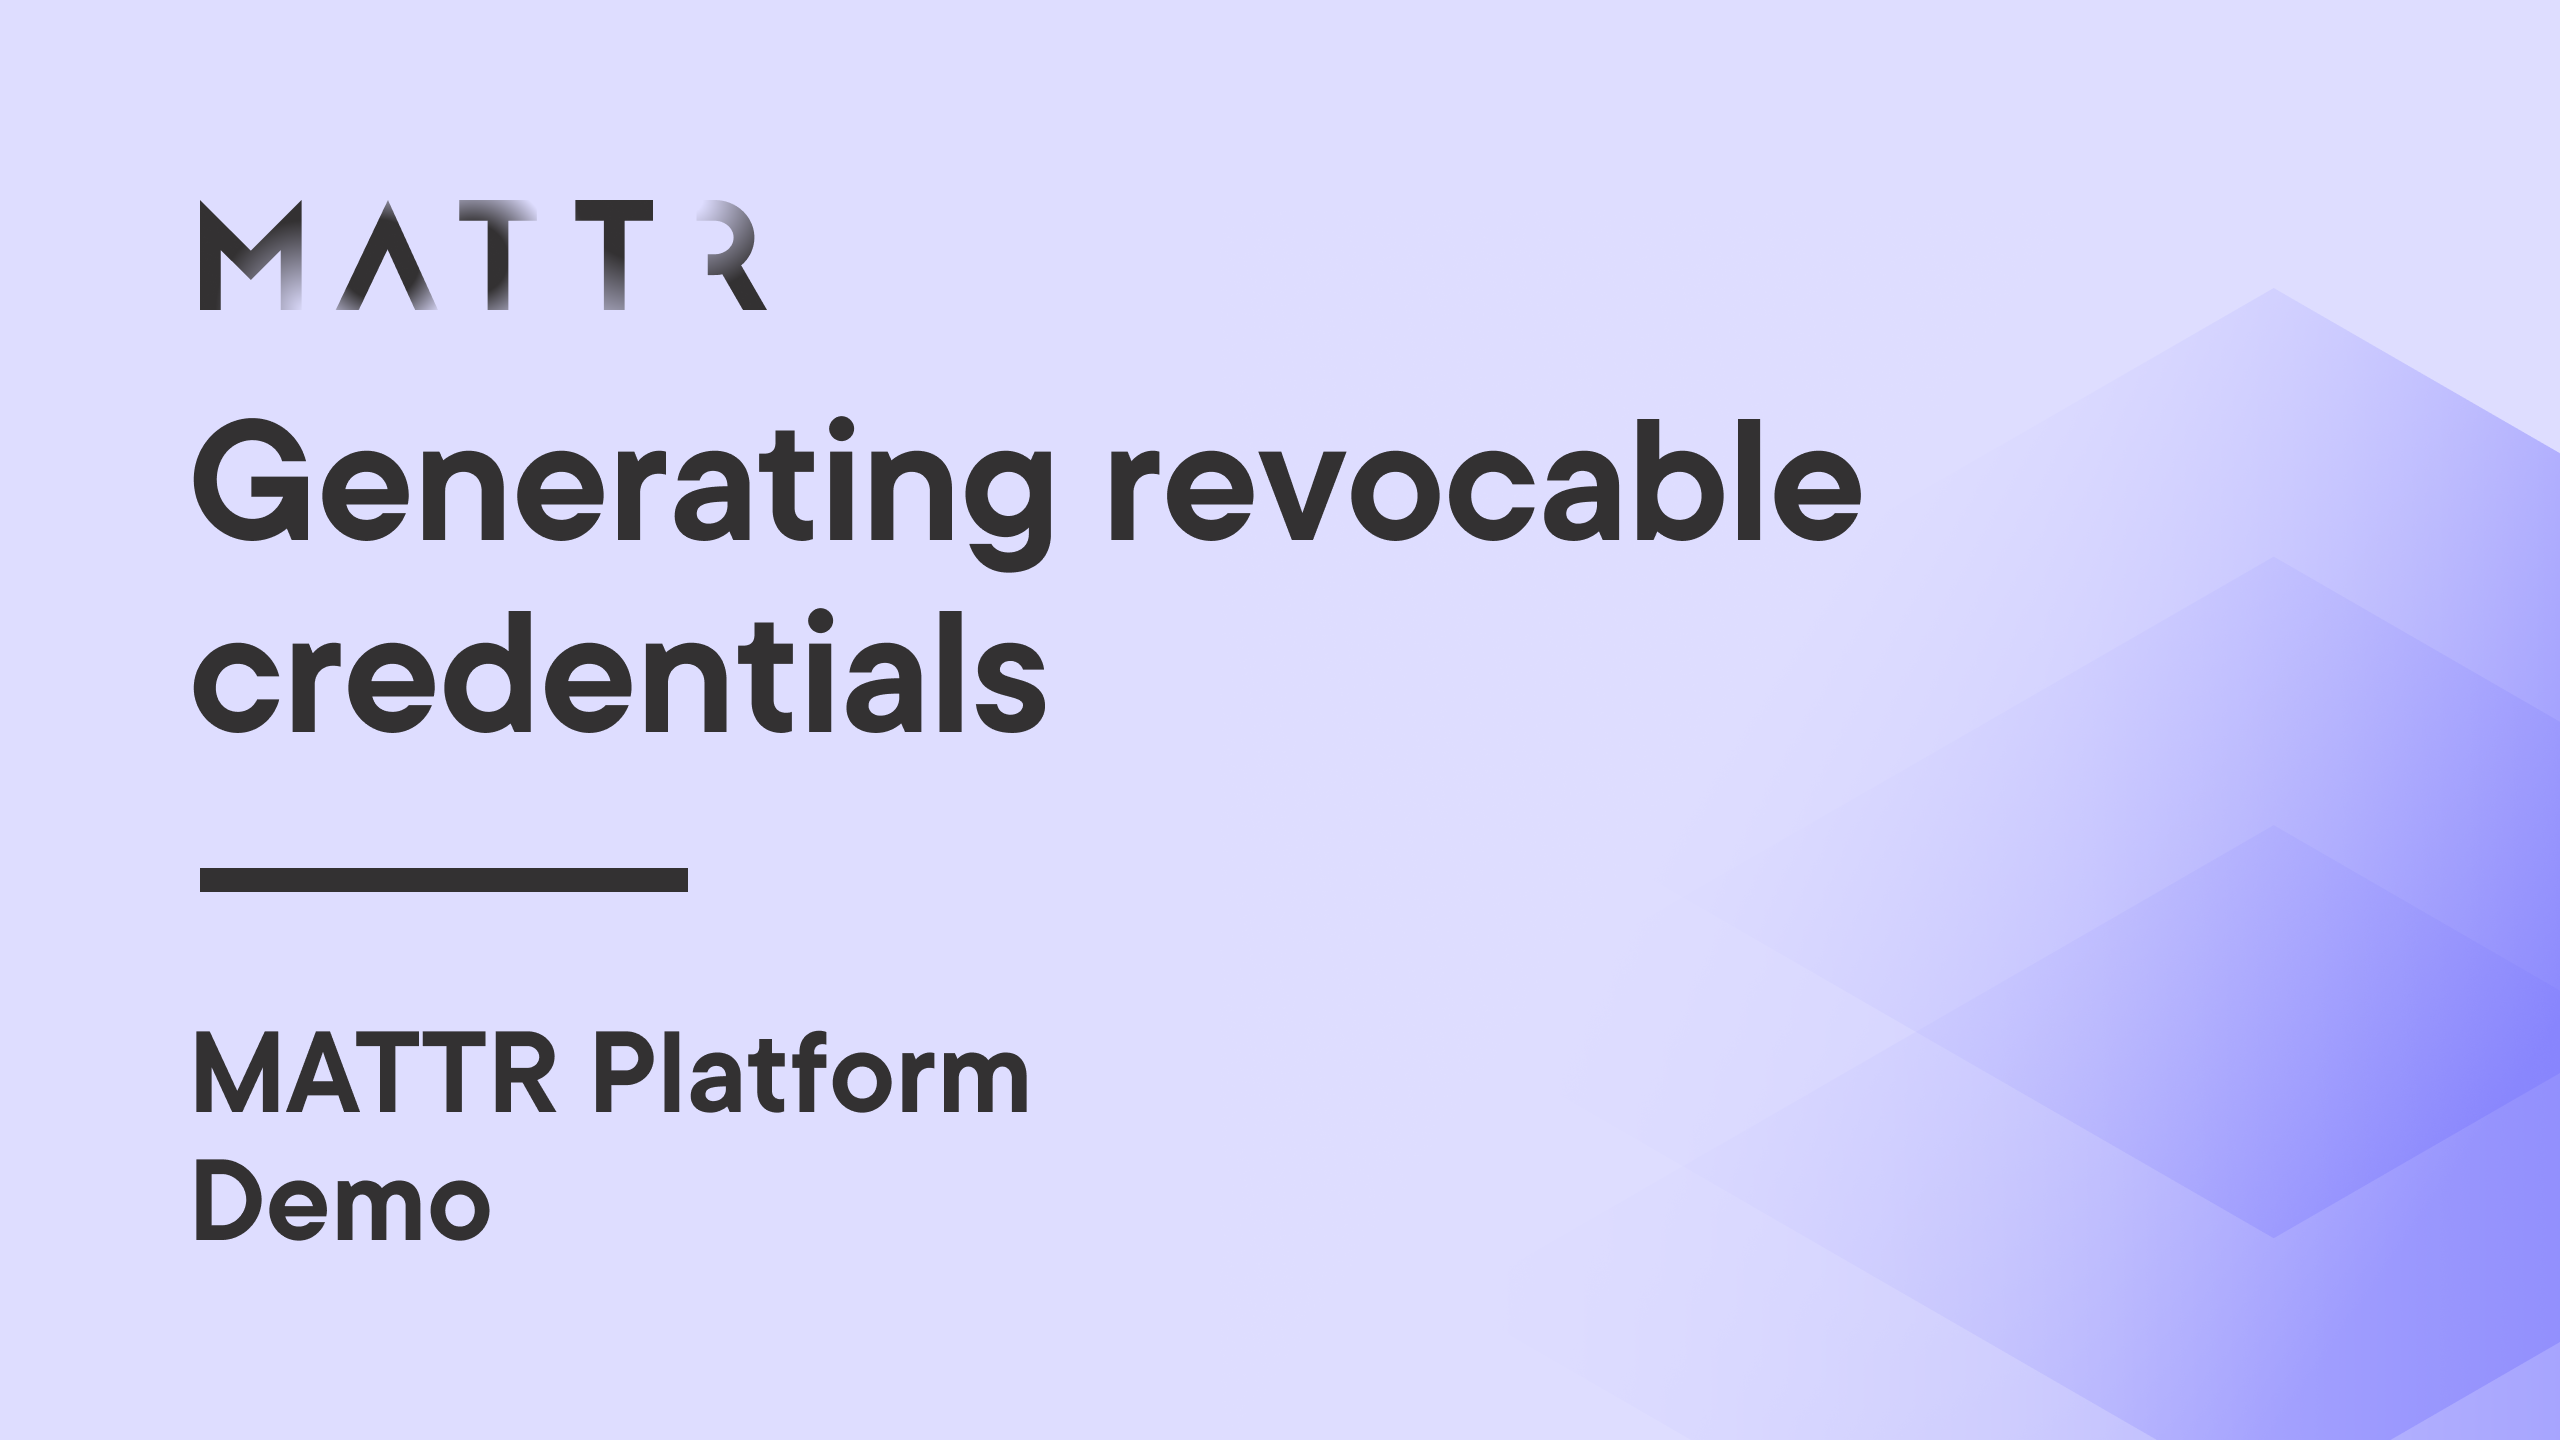 Generating revocable credentials using the MATTR Platform